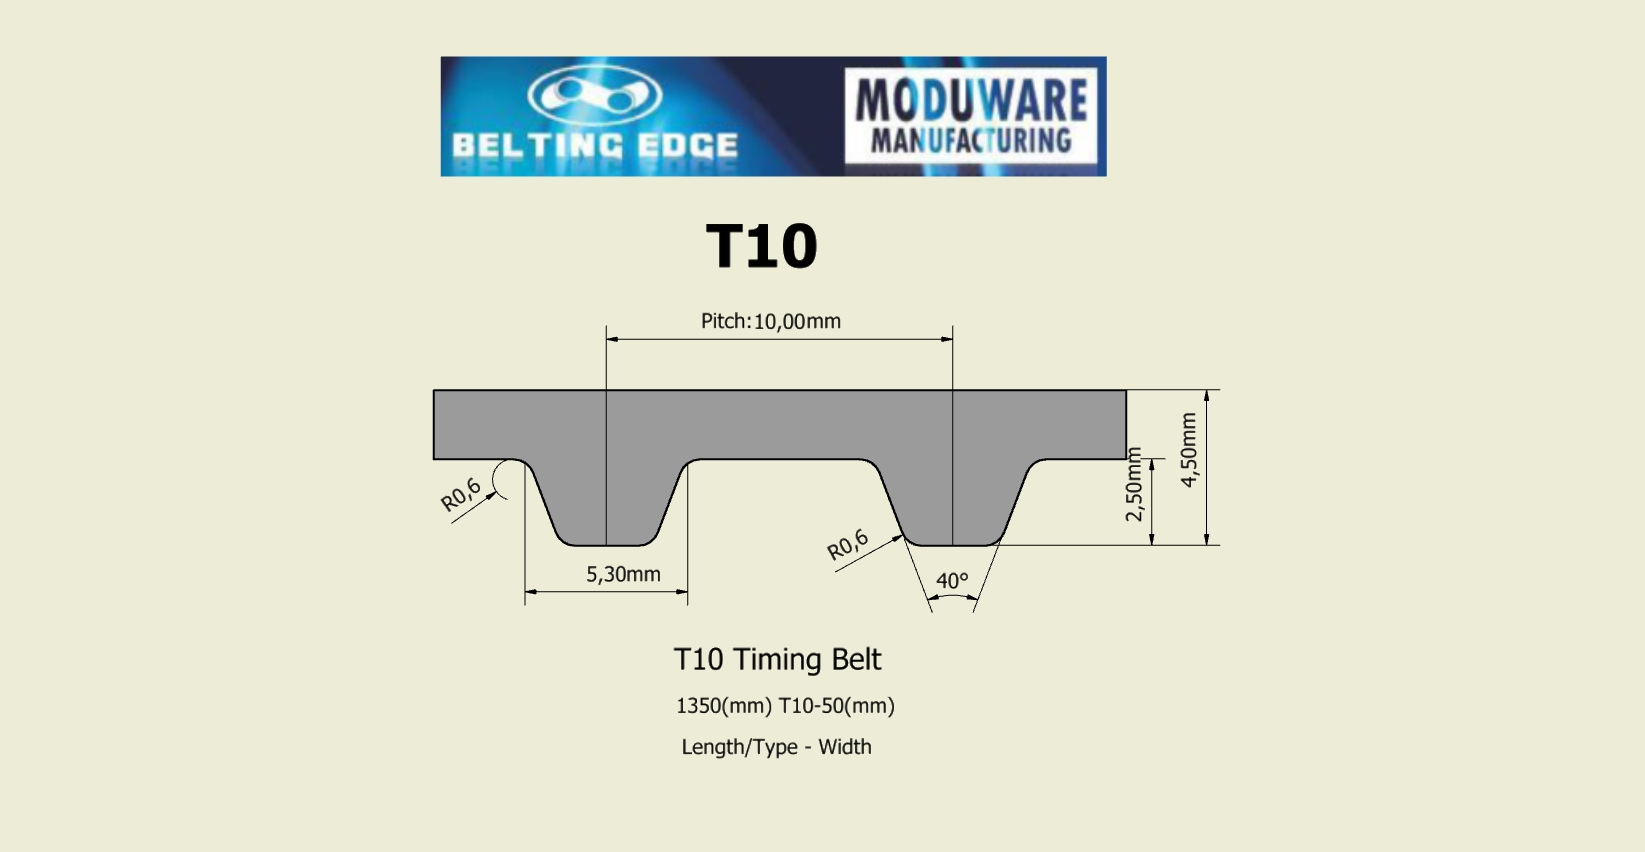 T10 PAZ Tooth, Timing belt, Kevlar Cords, PU Material. Technical Drawing